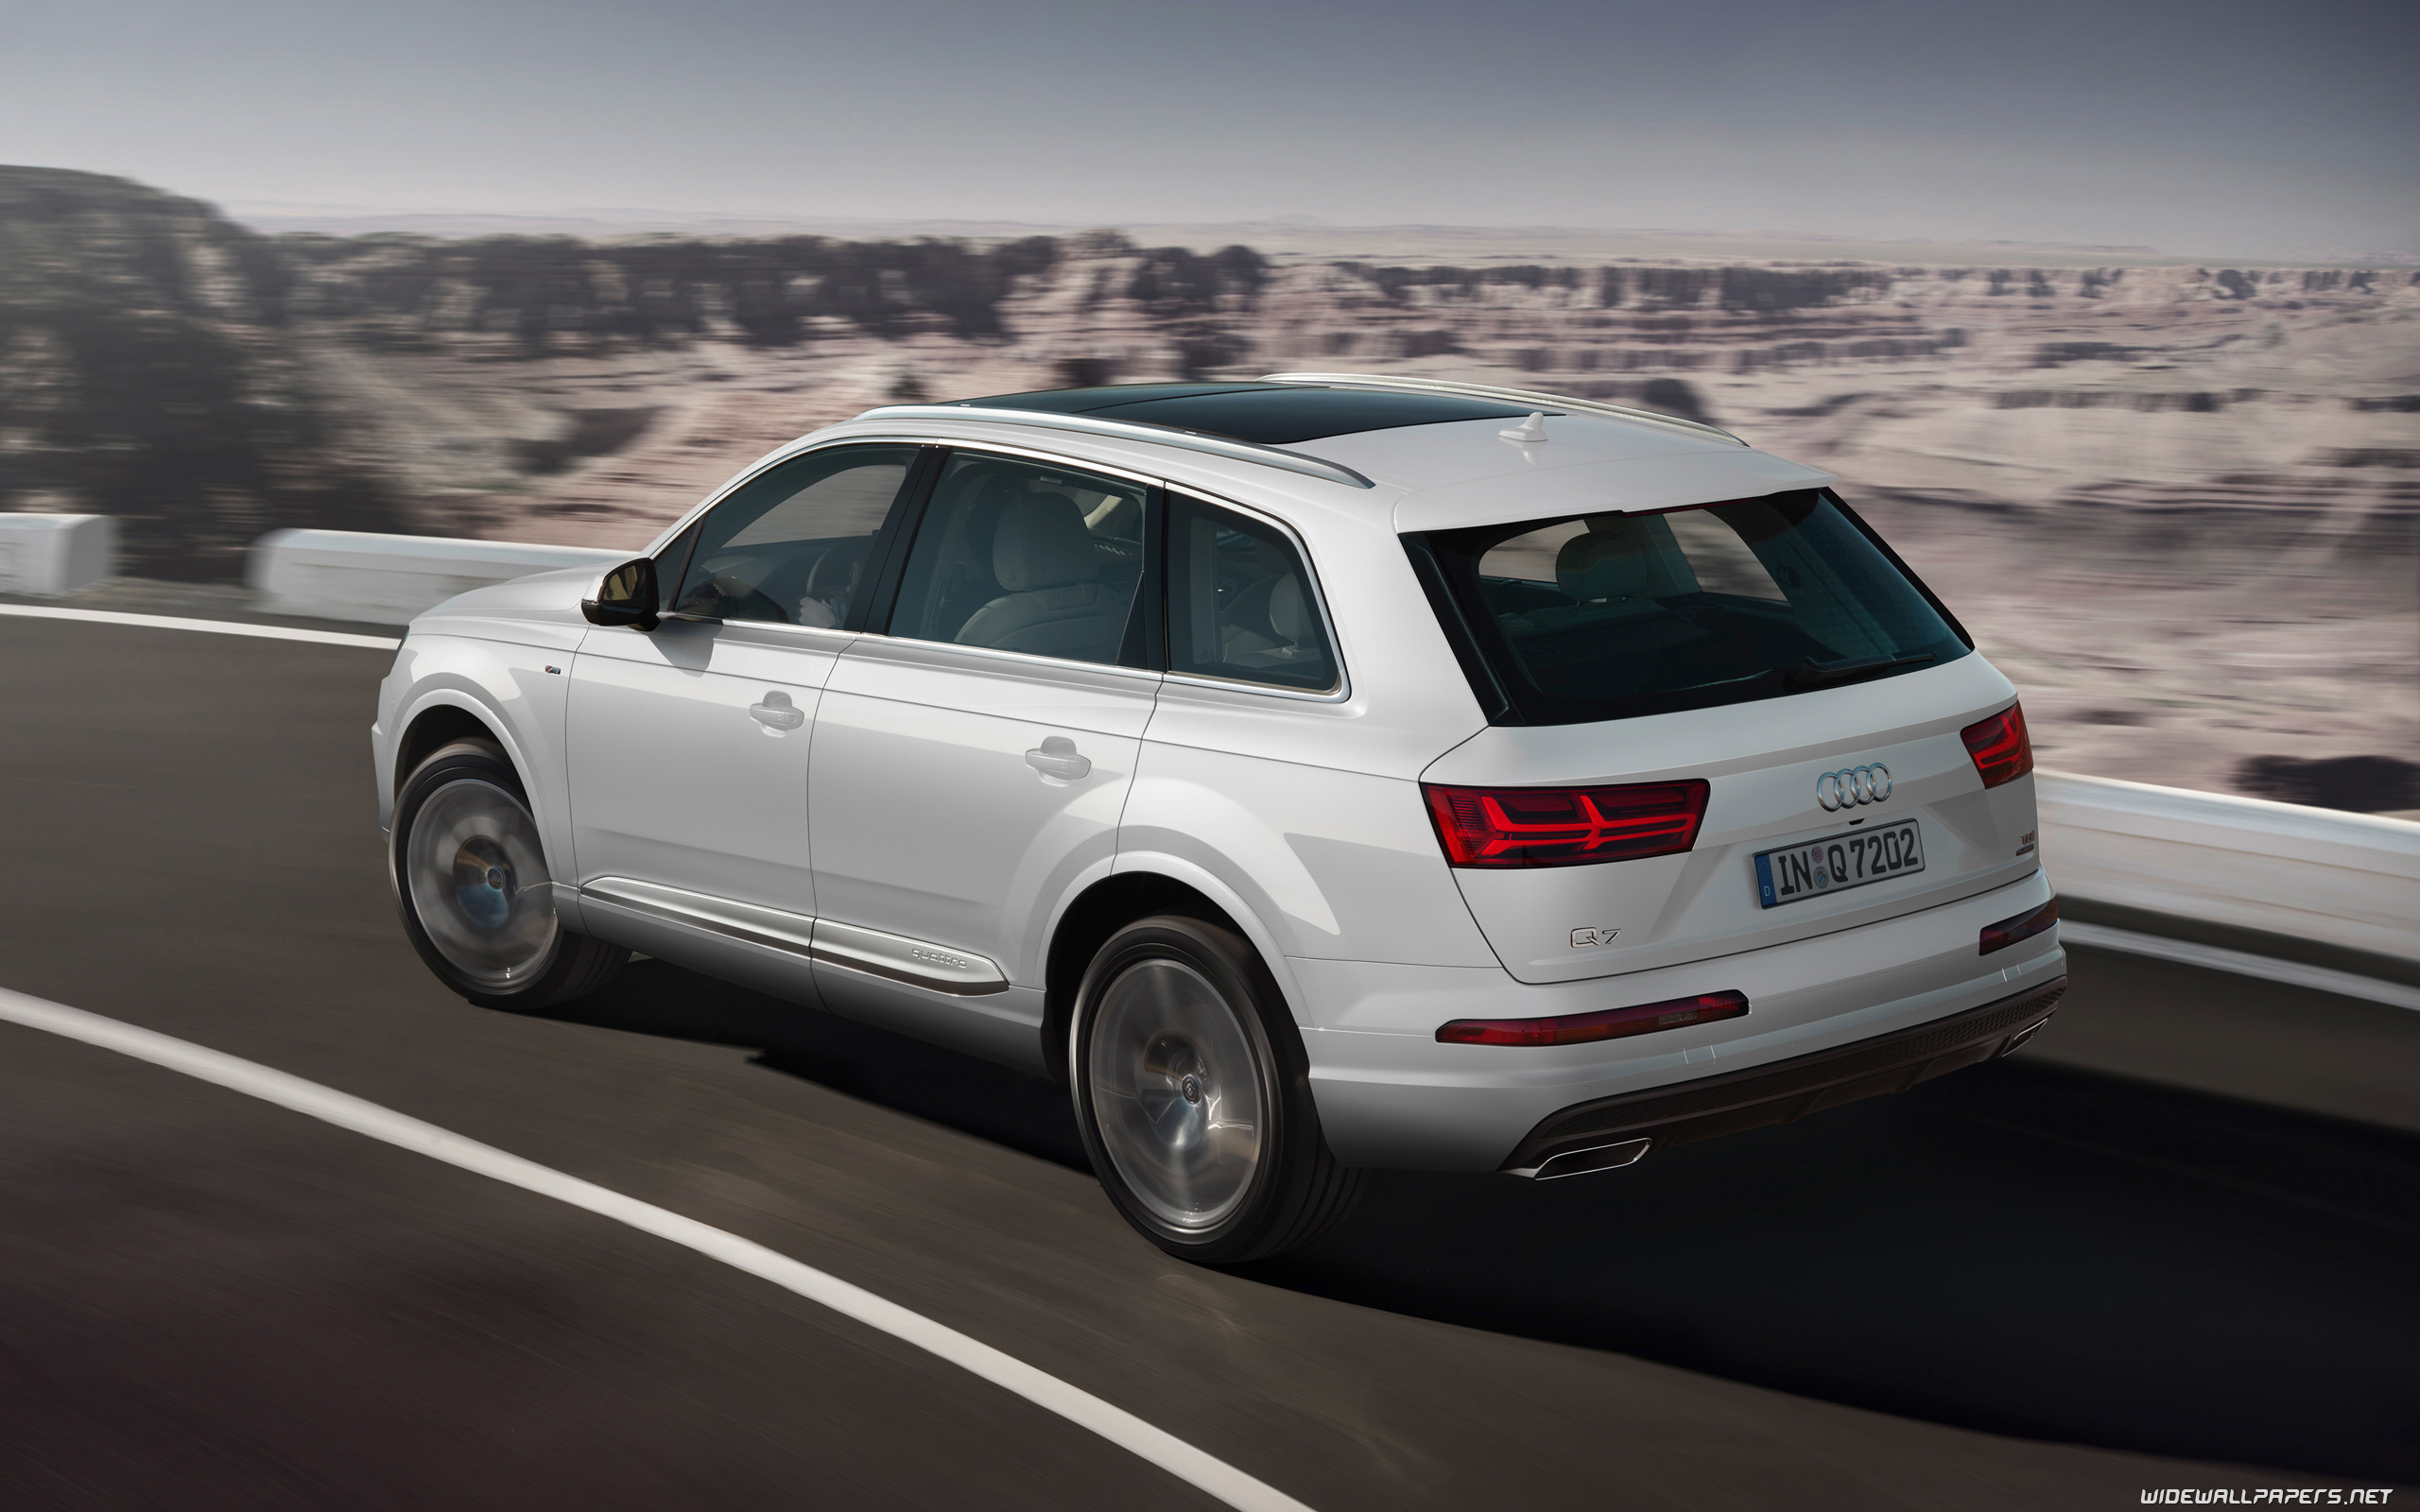 Audi Q7 Cars Desktop Wallpapers 4k Ultra Hd